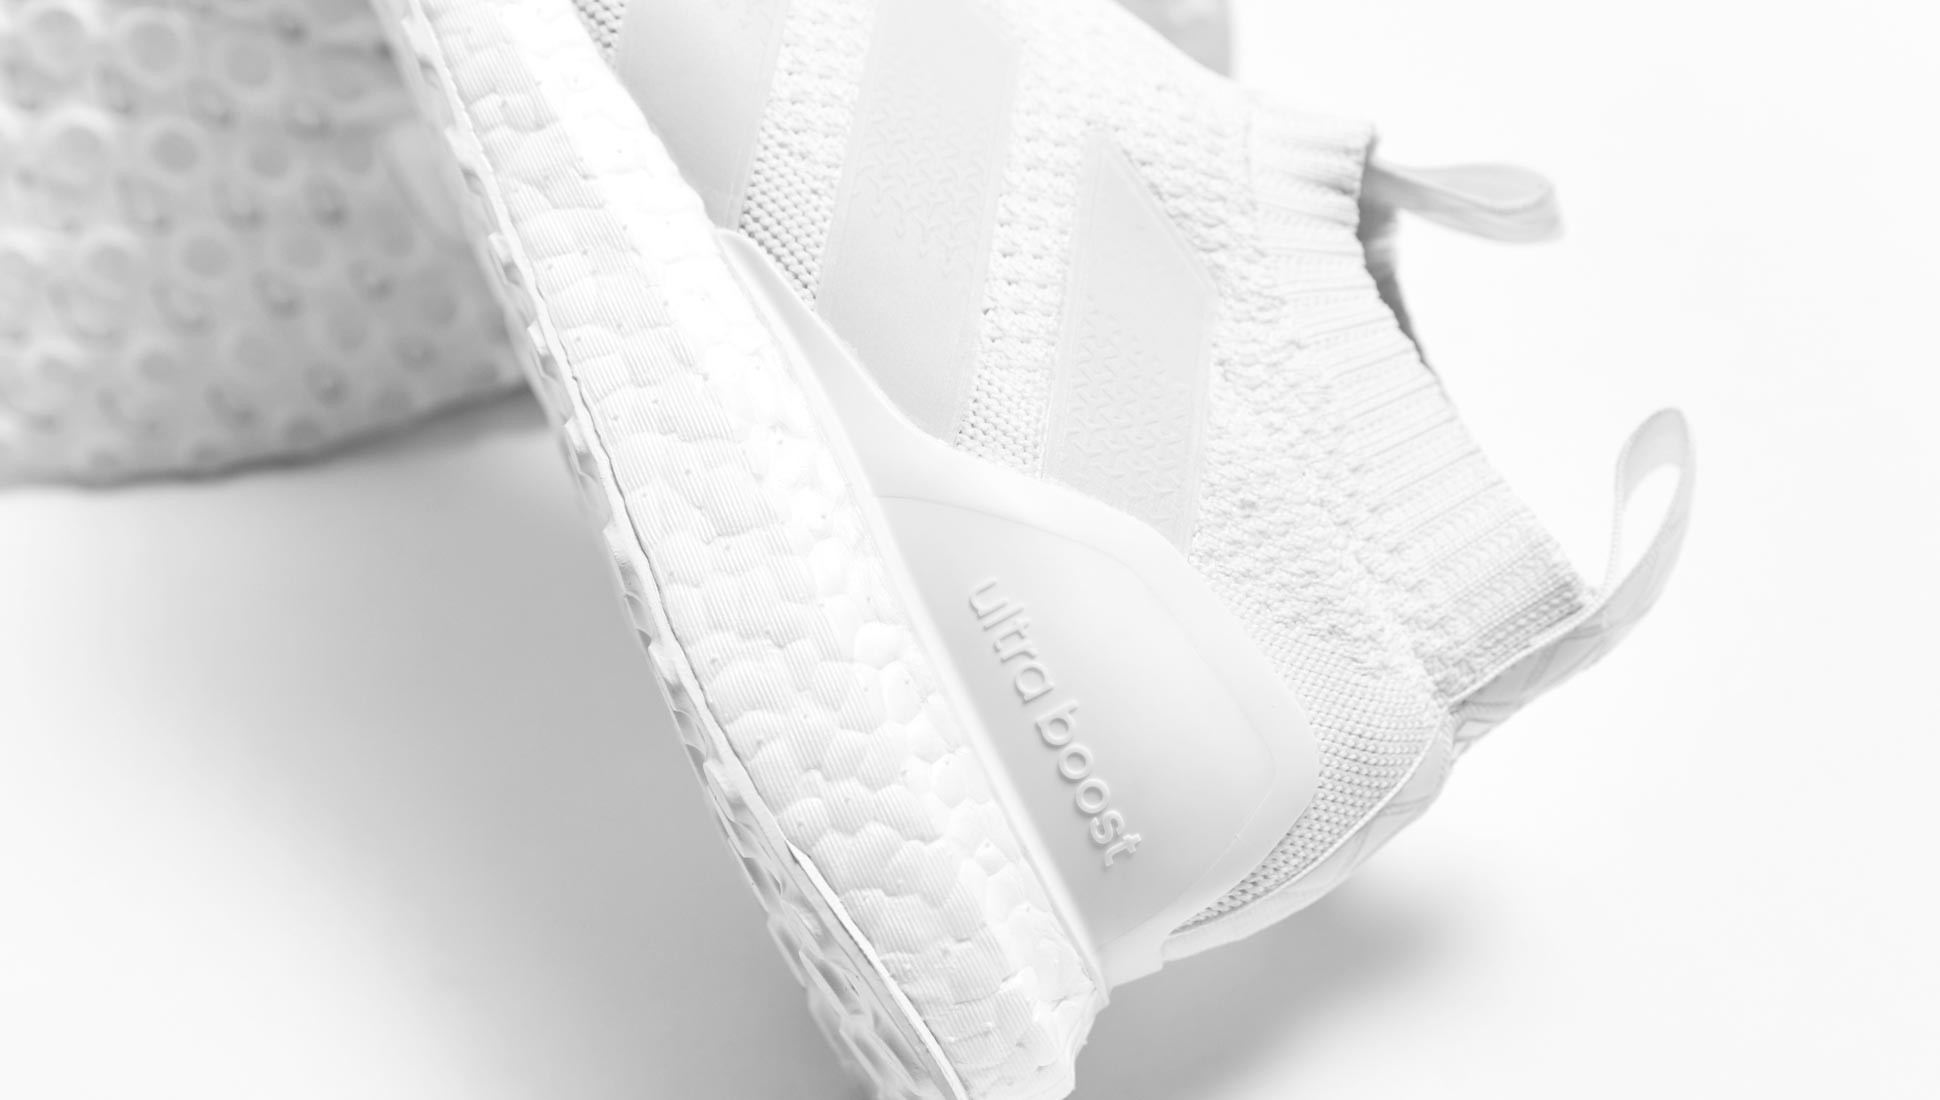 chaussures-lifestyle-adidas-ace16-purecontrol-ultraboost-img4